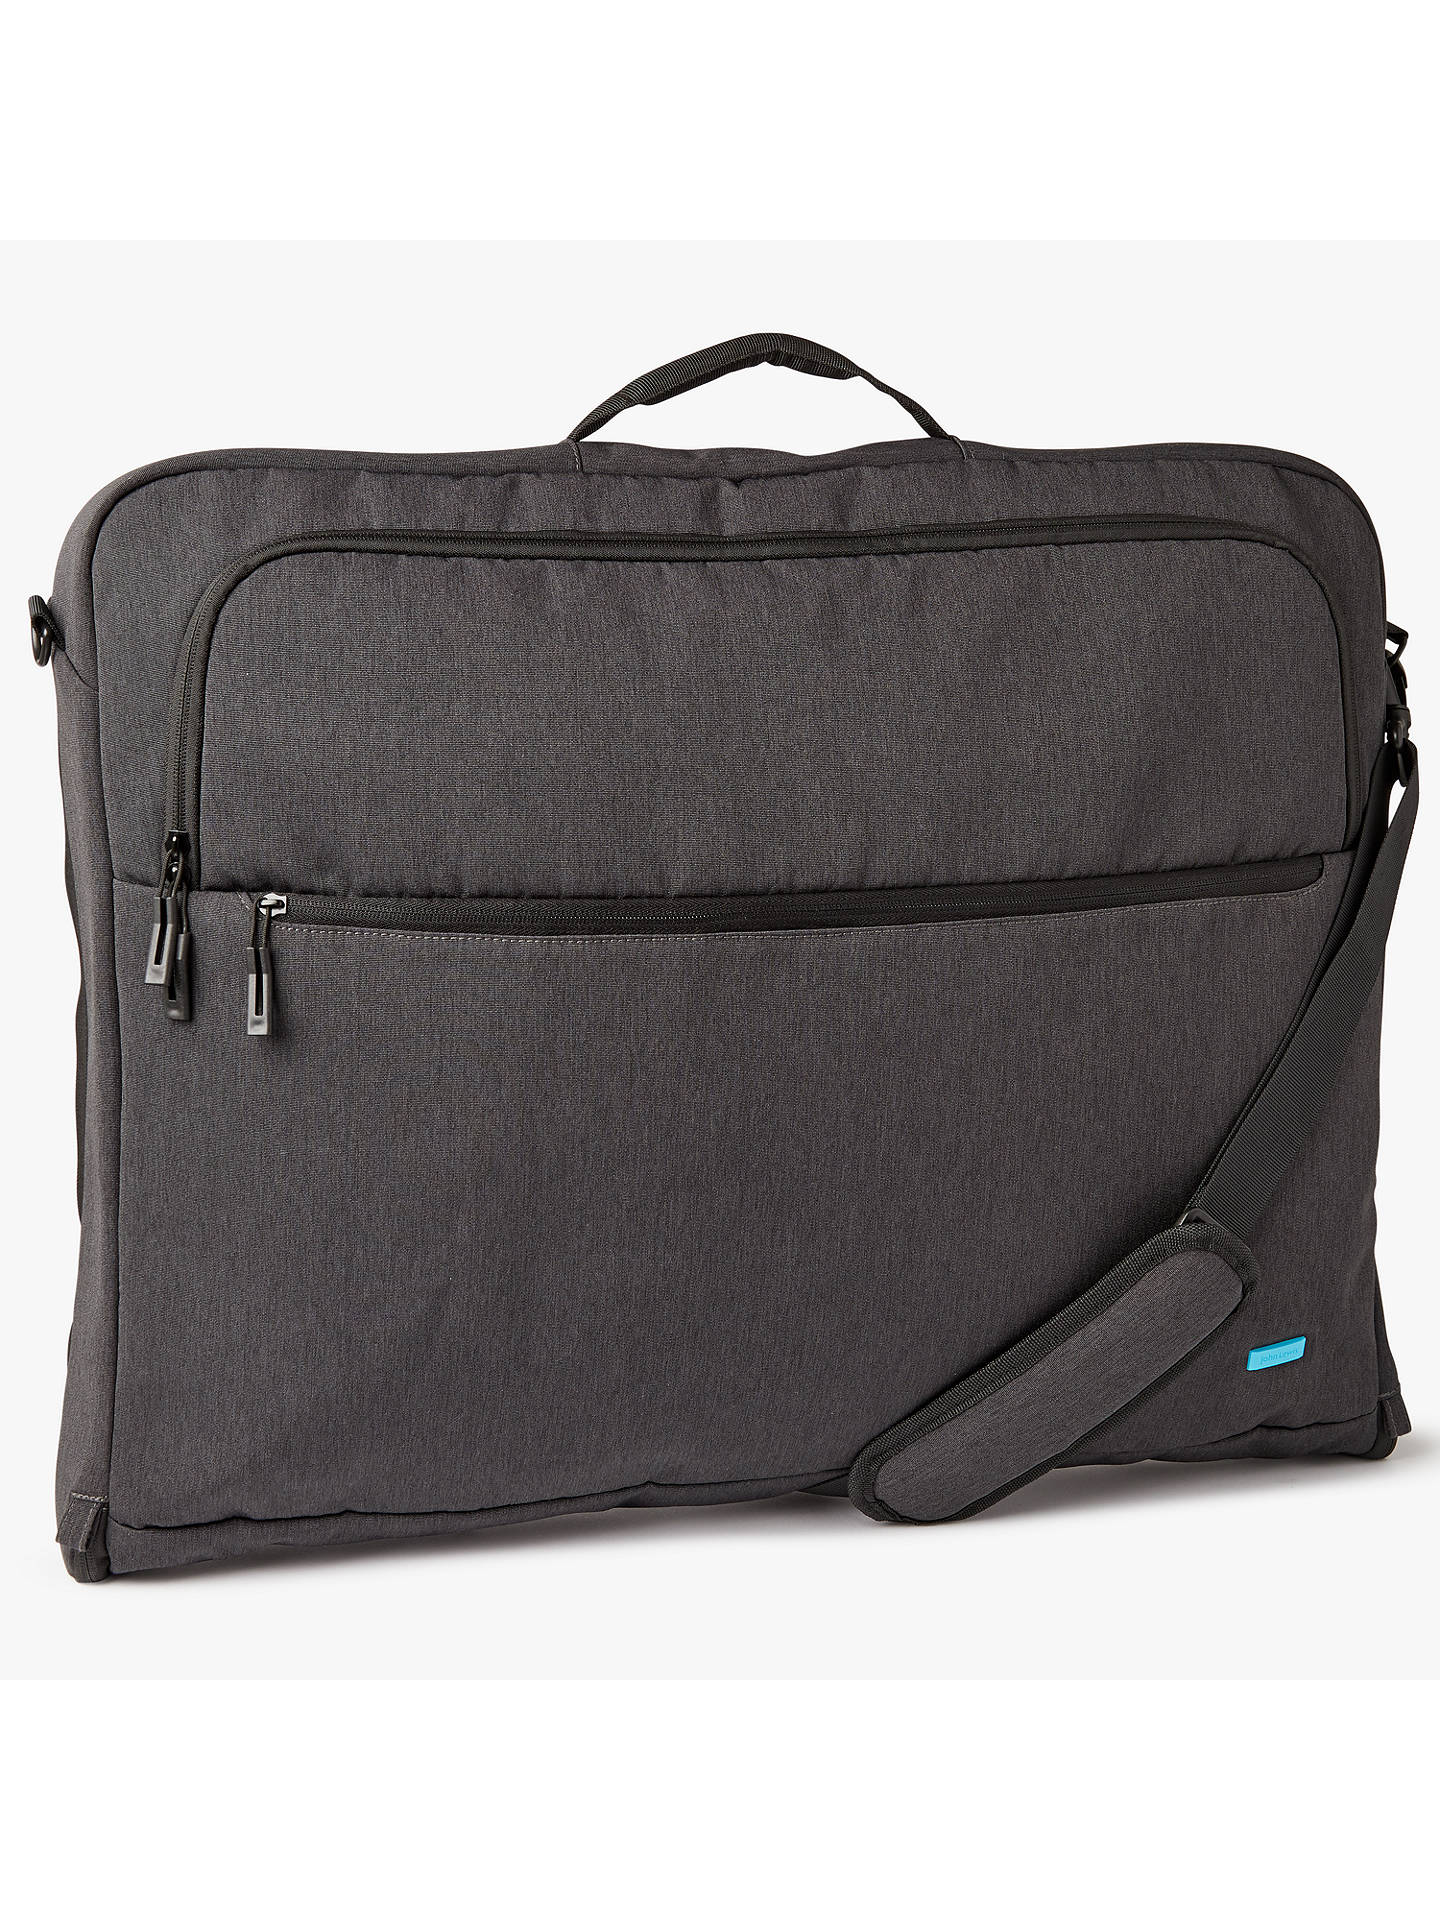 BuyJohn Lewis & Partners Commuteii Garment Carrier, Graphite Online at johnlewis.com